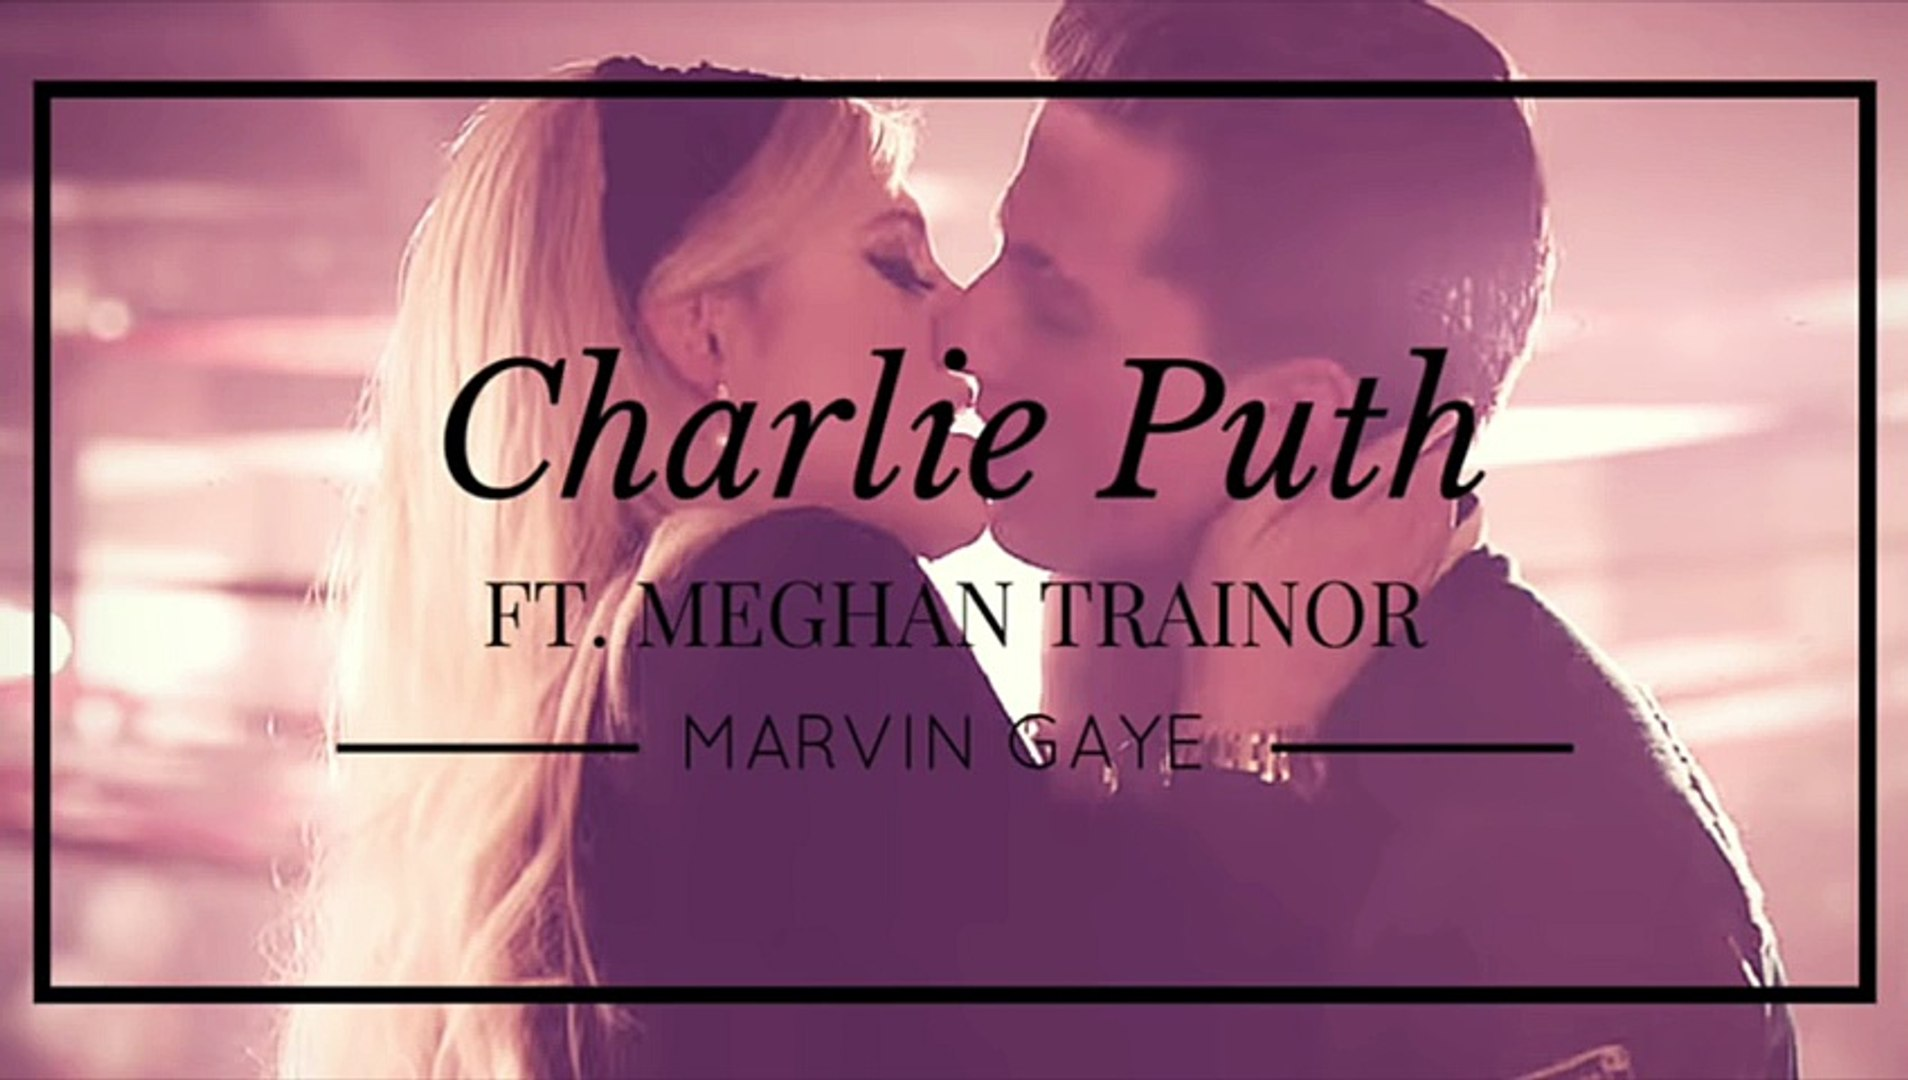 Charlie puth marvin gaye meghan trainor youtube